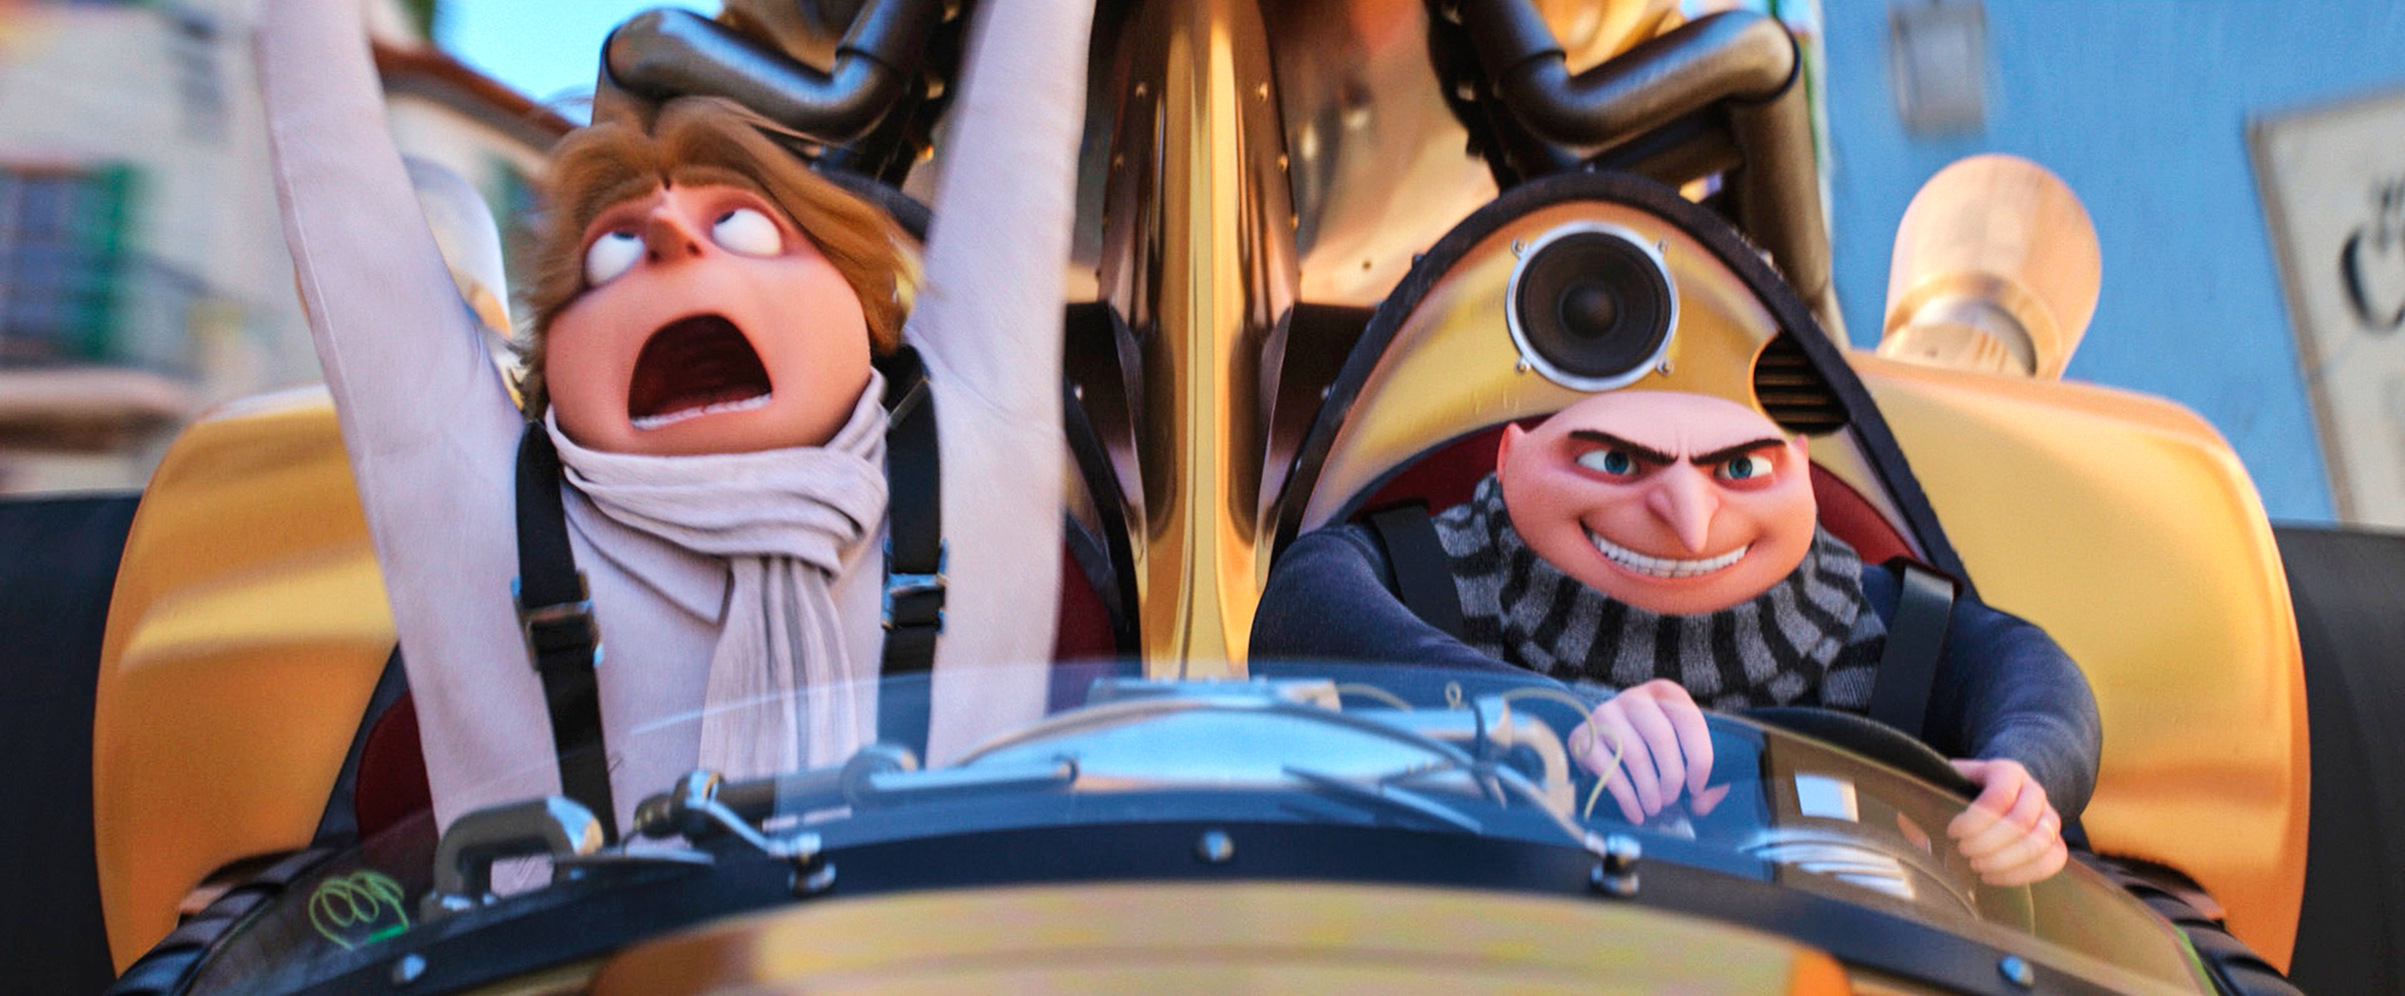 Twins Dru and Gru make for a dastardly duo in Despicable Me 3